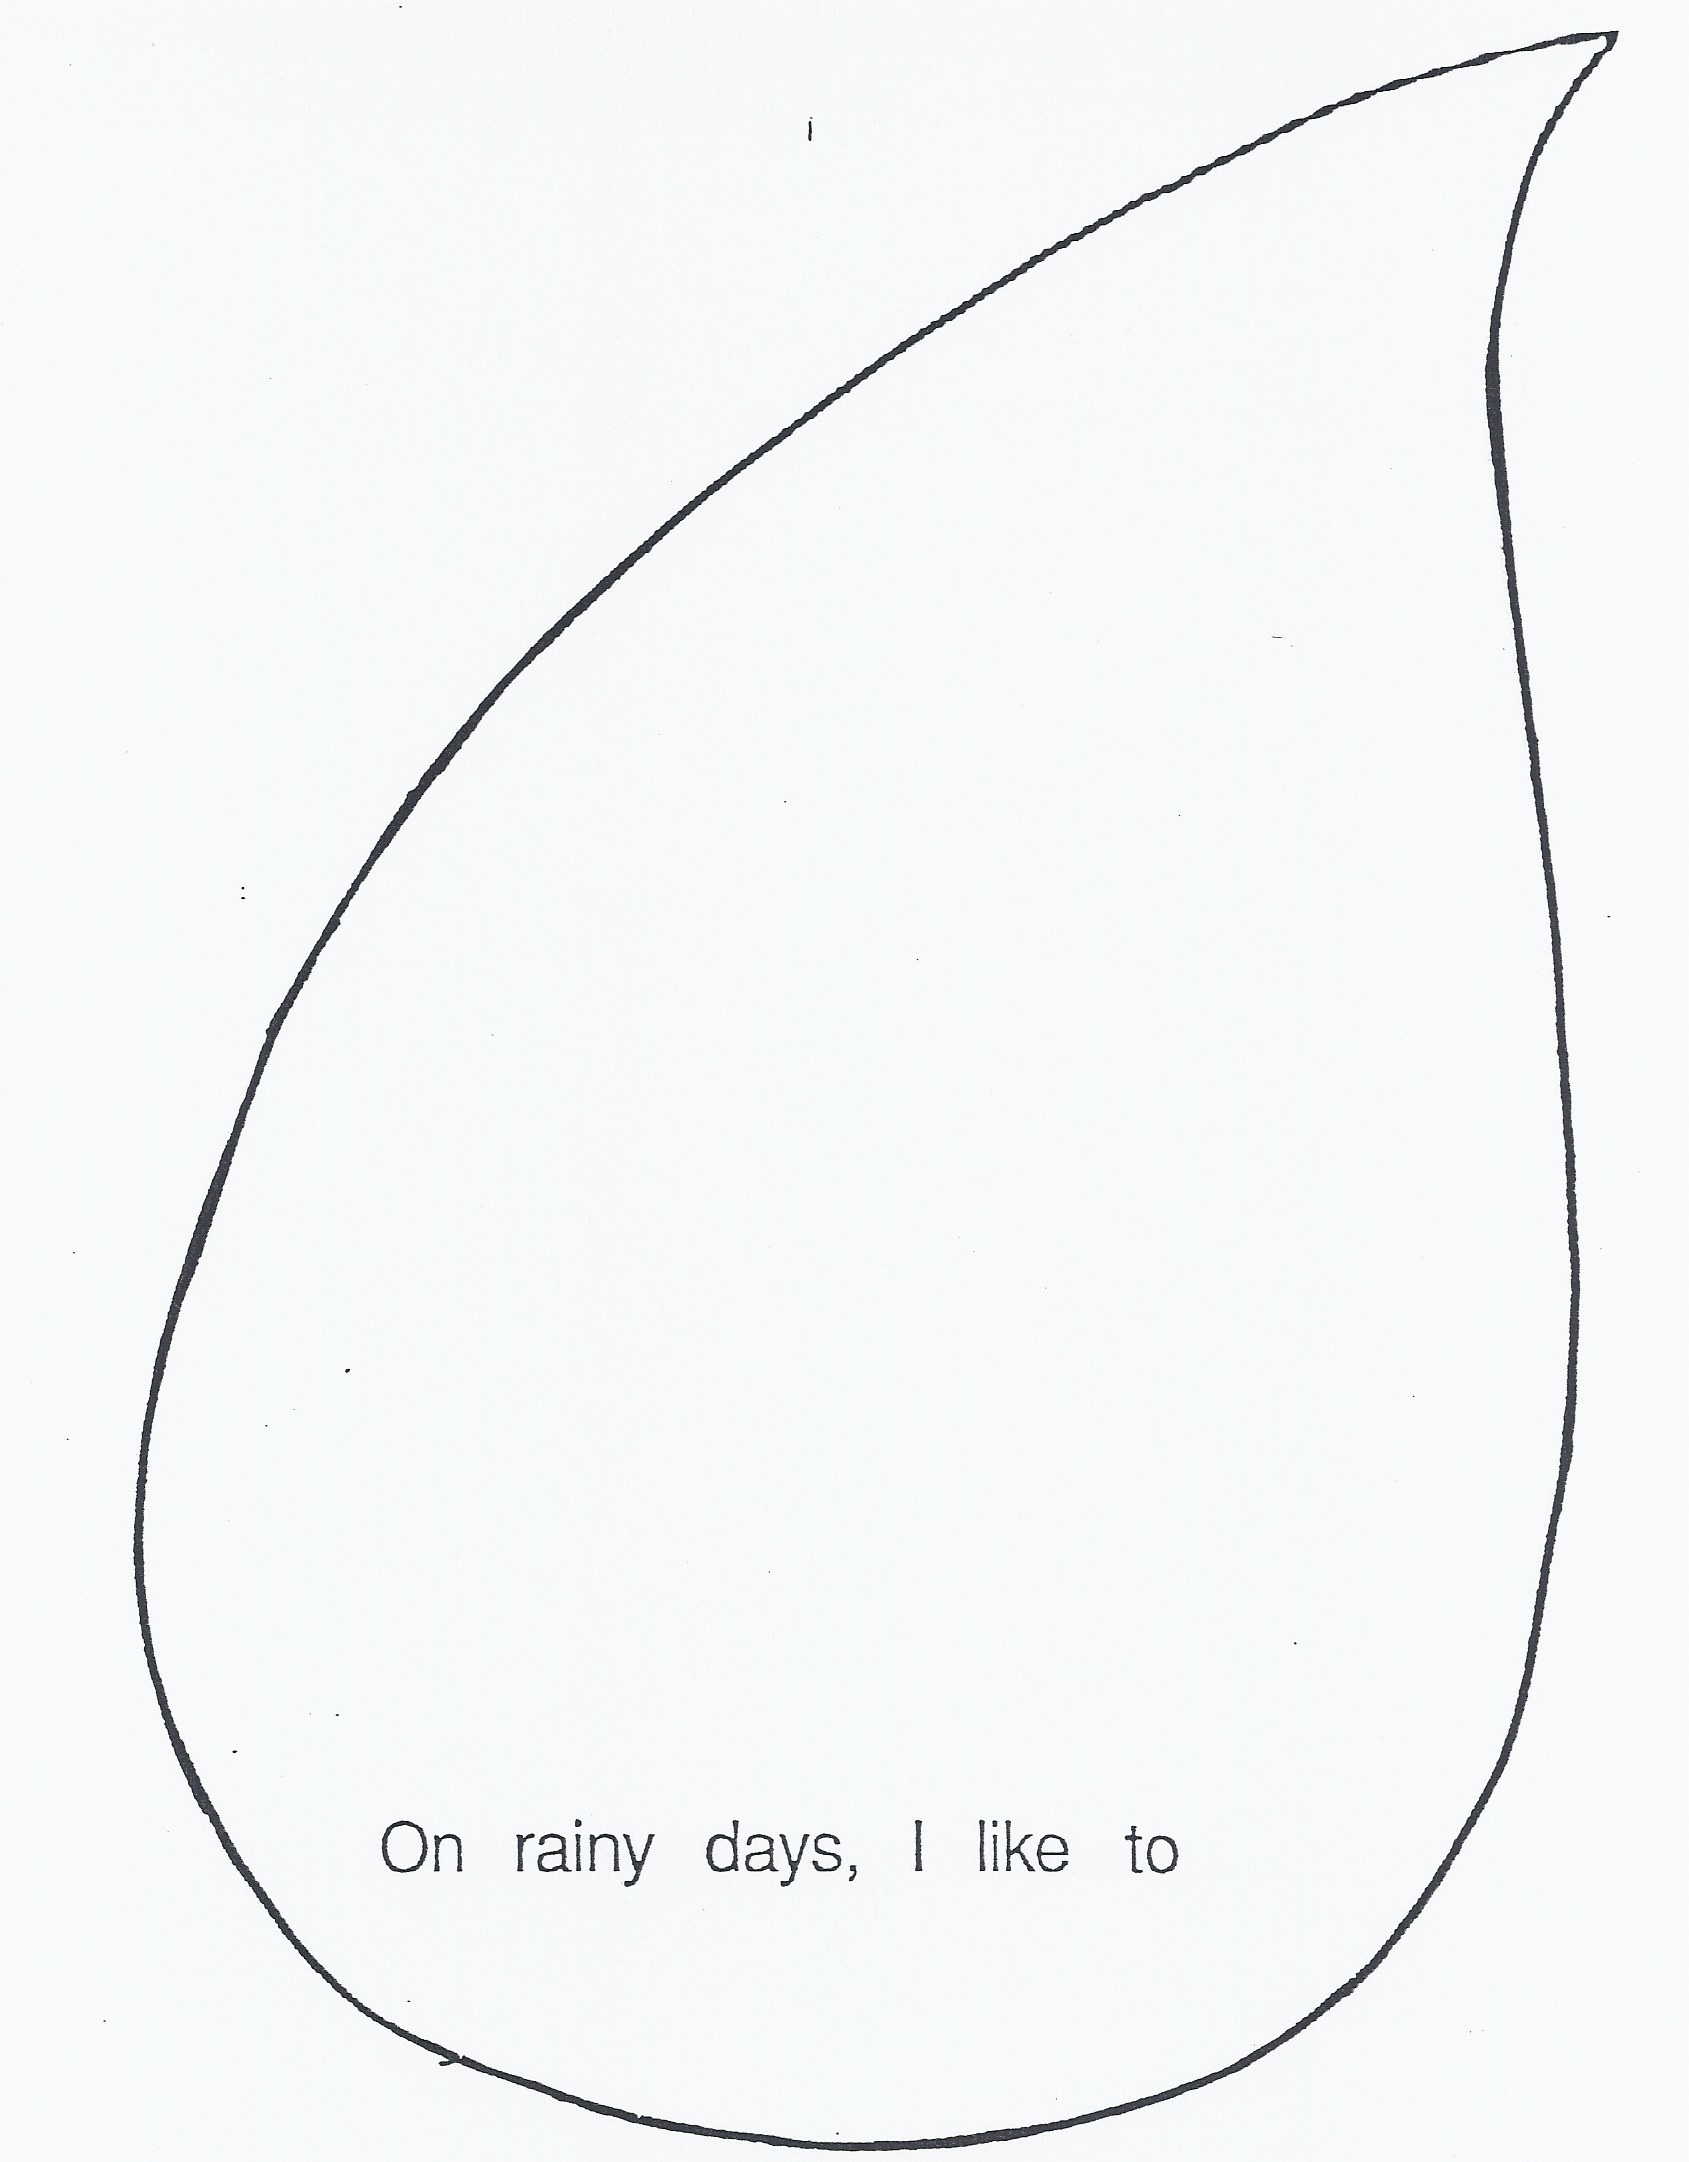 Template Of Raindrop With Lines